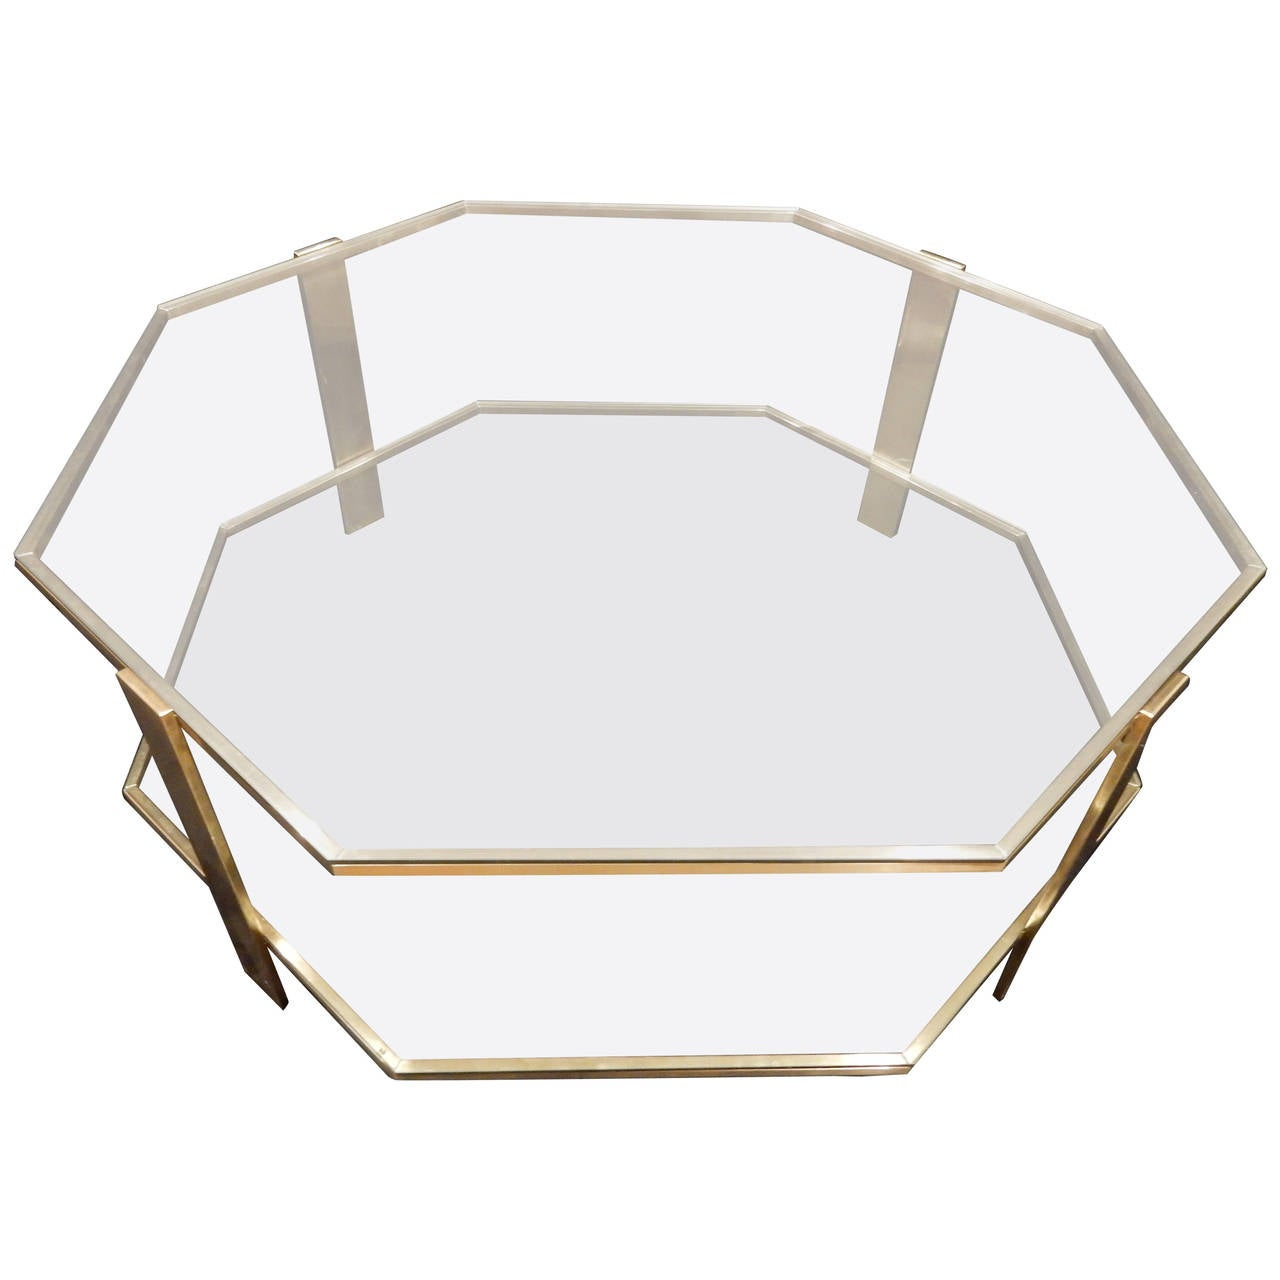 Maison malabert bronze octagonal coffee table at 1stdibs for Octagon coffee table